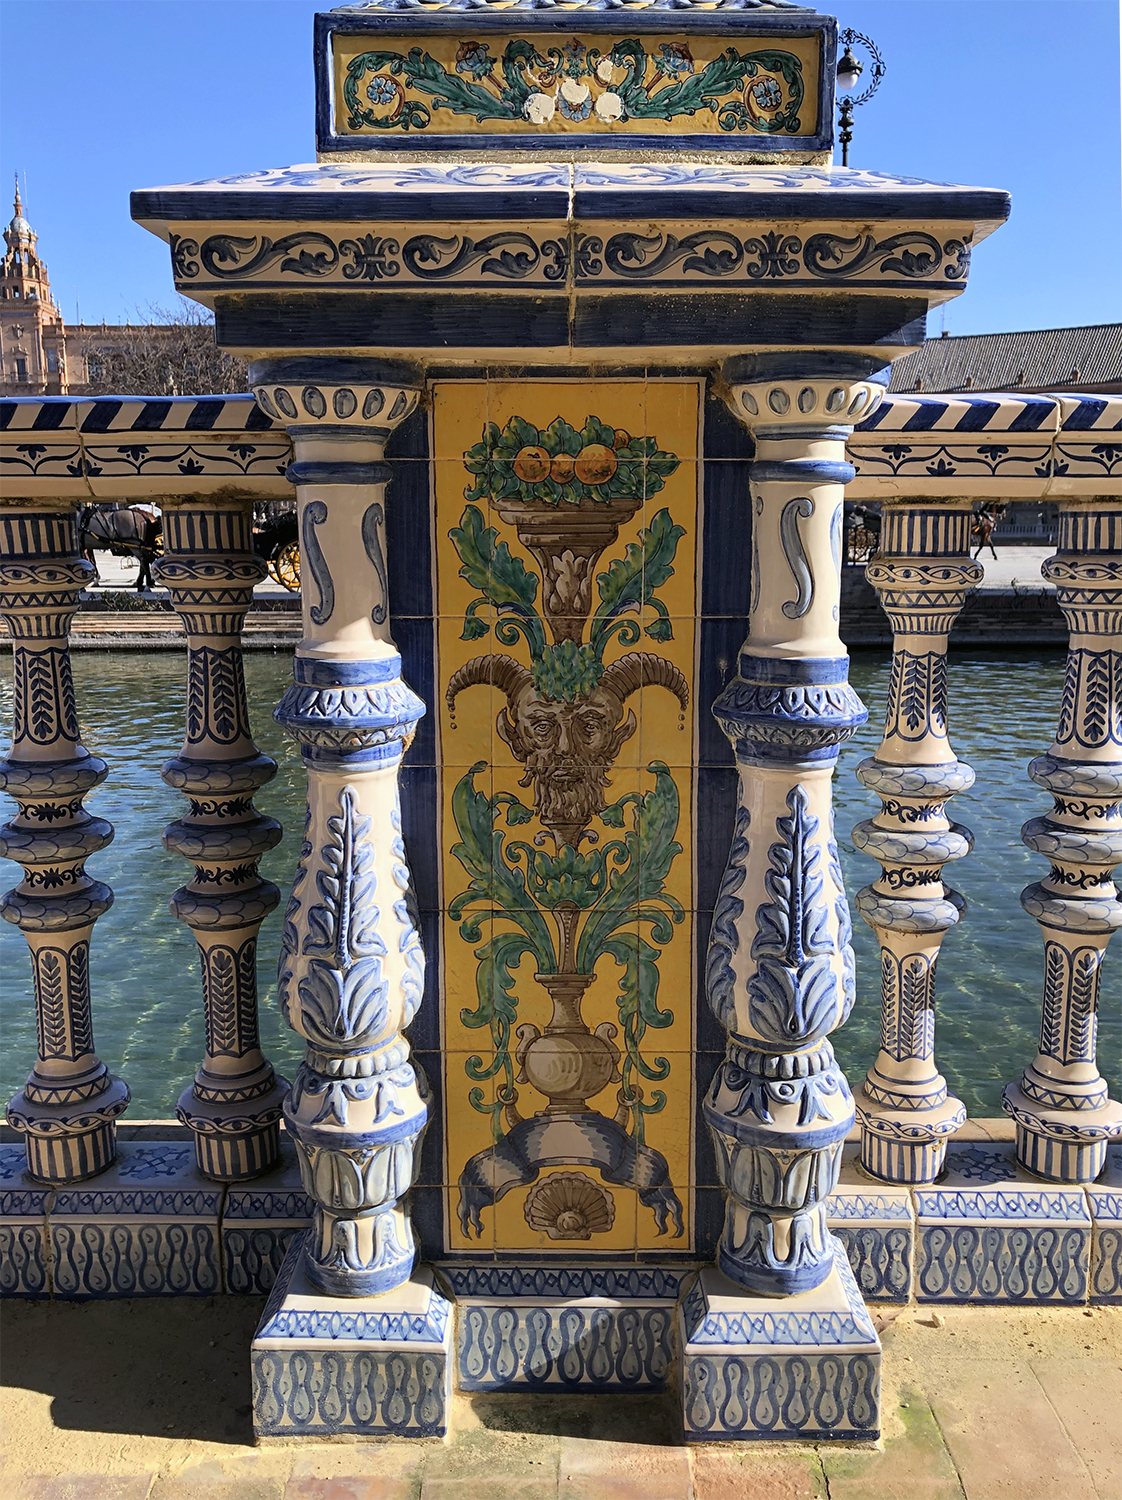 Ornate, vibrant tile work covers this entire plaza